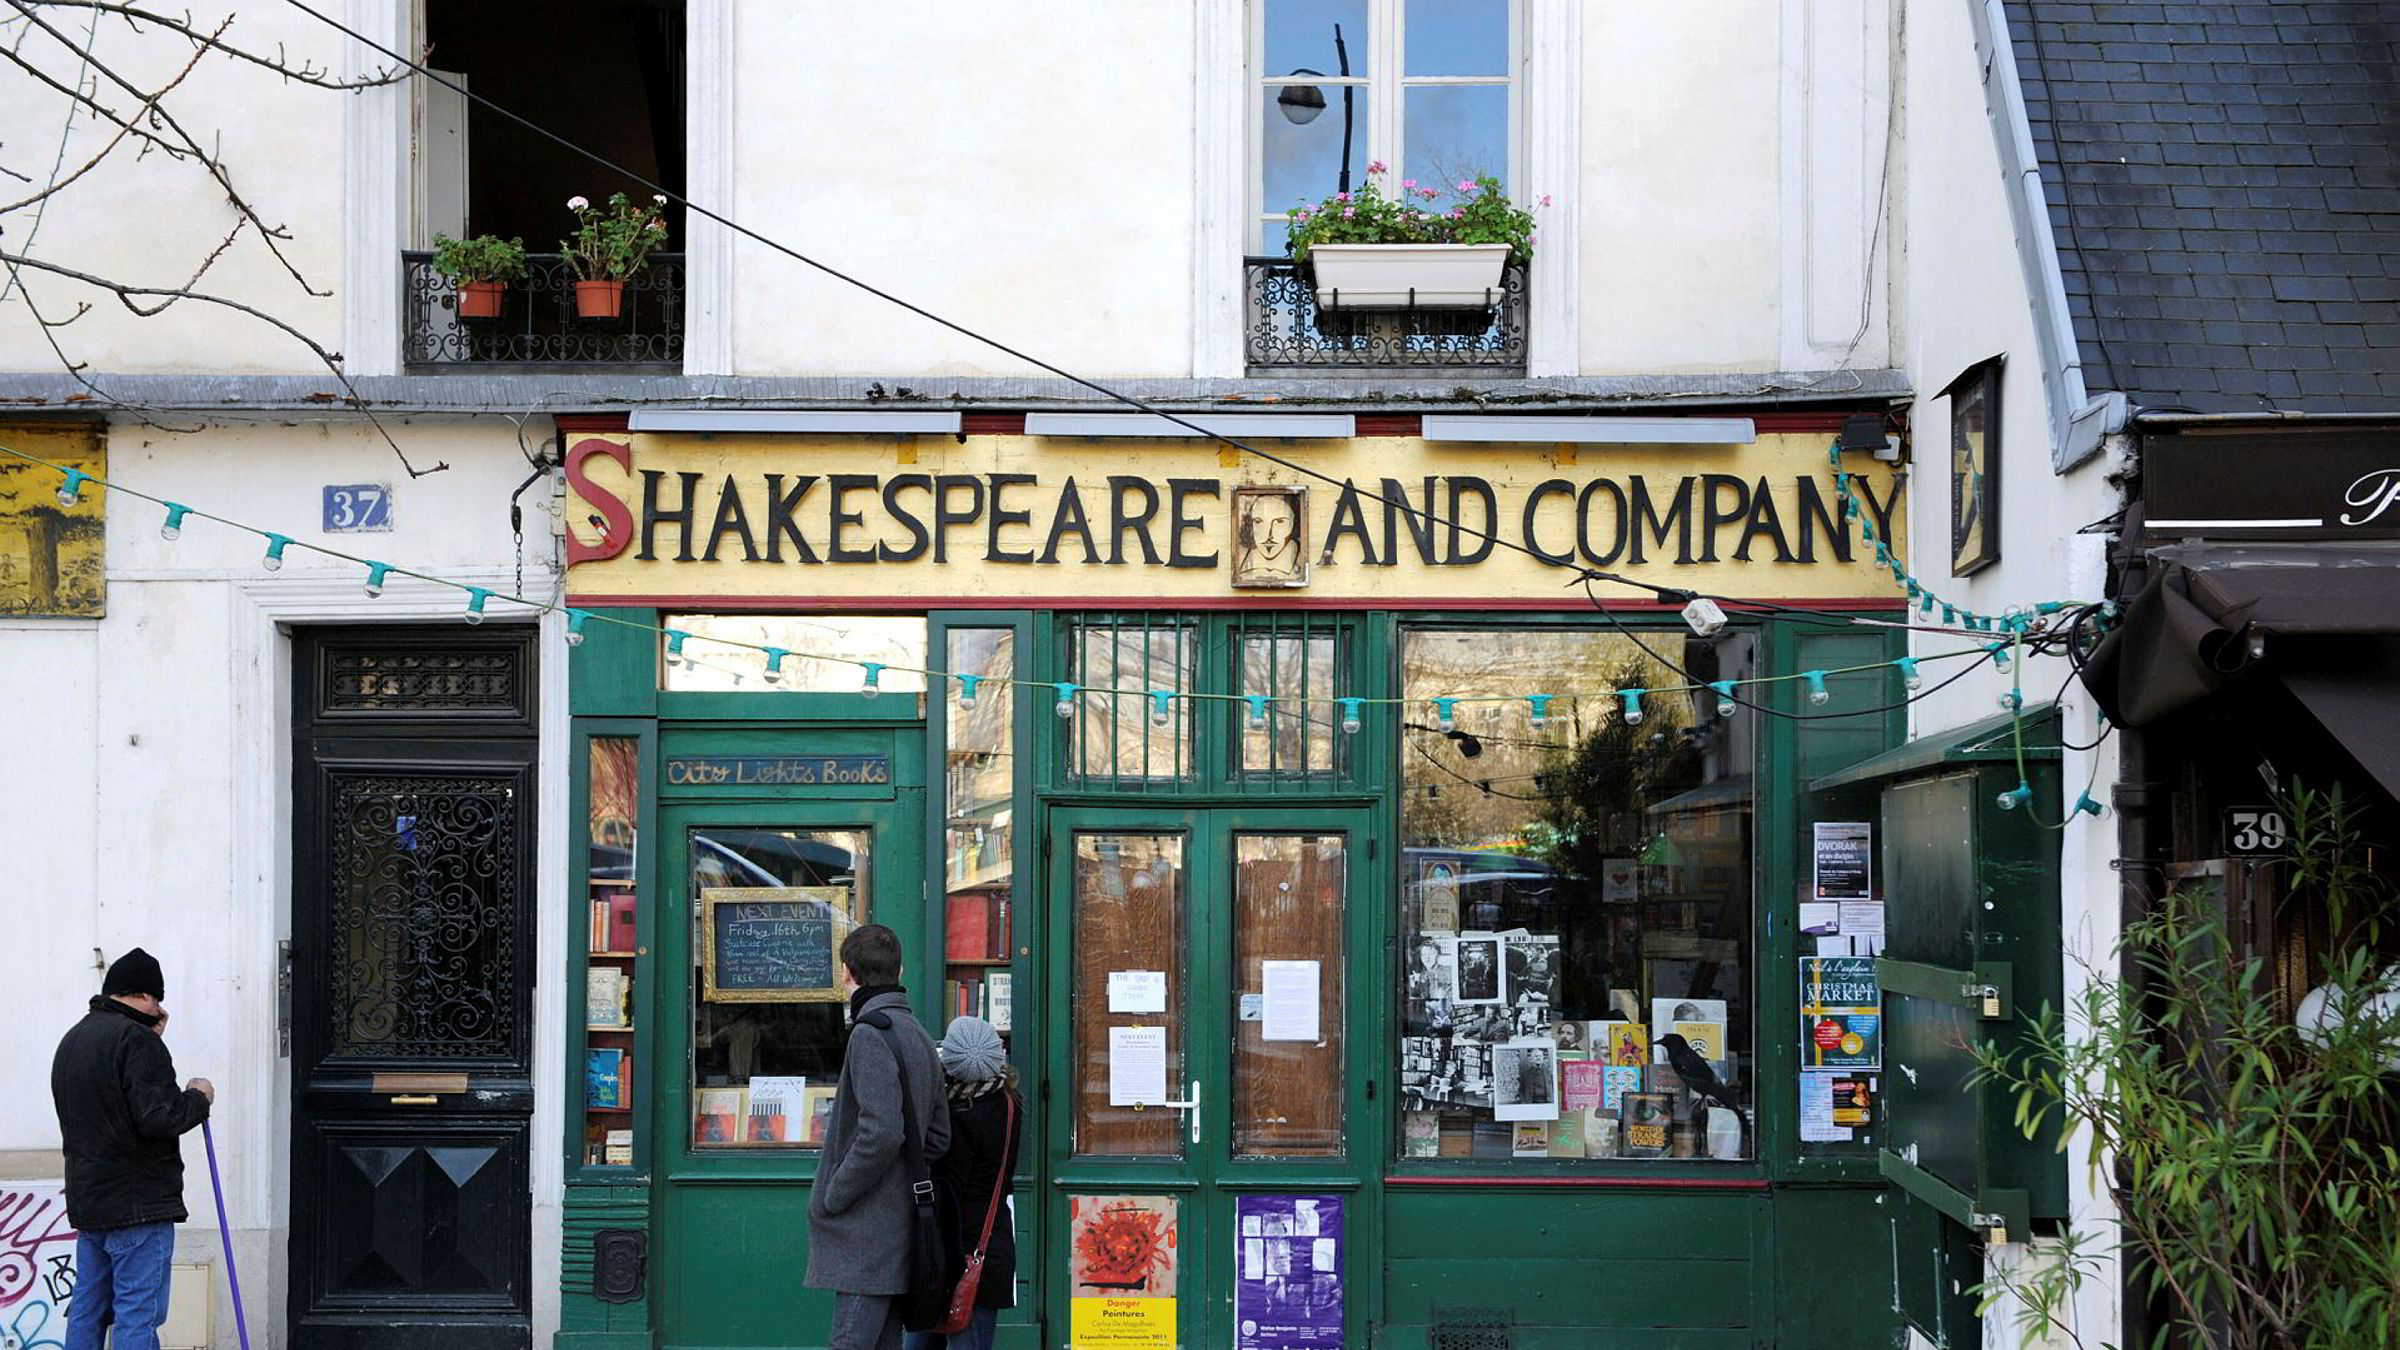 Teksten over inngangen til bokhandelens lesesal sier «Be not inhospitable to strangers, lest they be angels in disguise», skriver forfatteren. Her utenfor bokhandelen Shakespeare and Company i Paris.